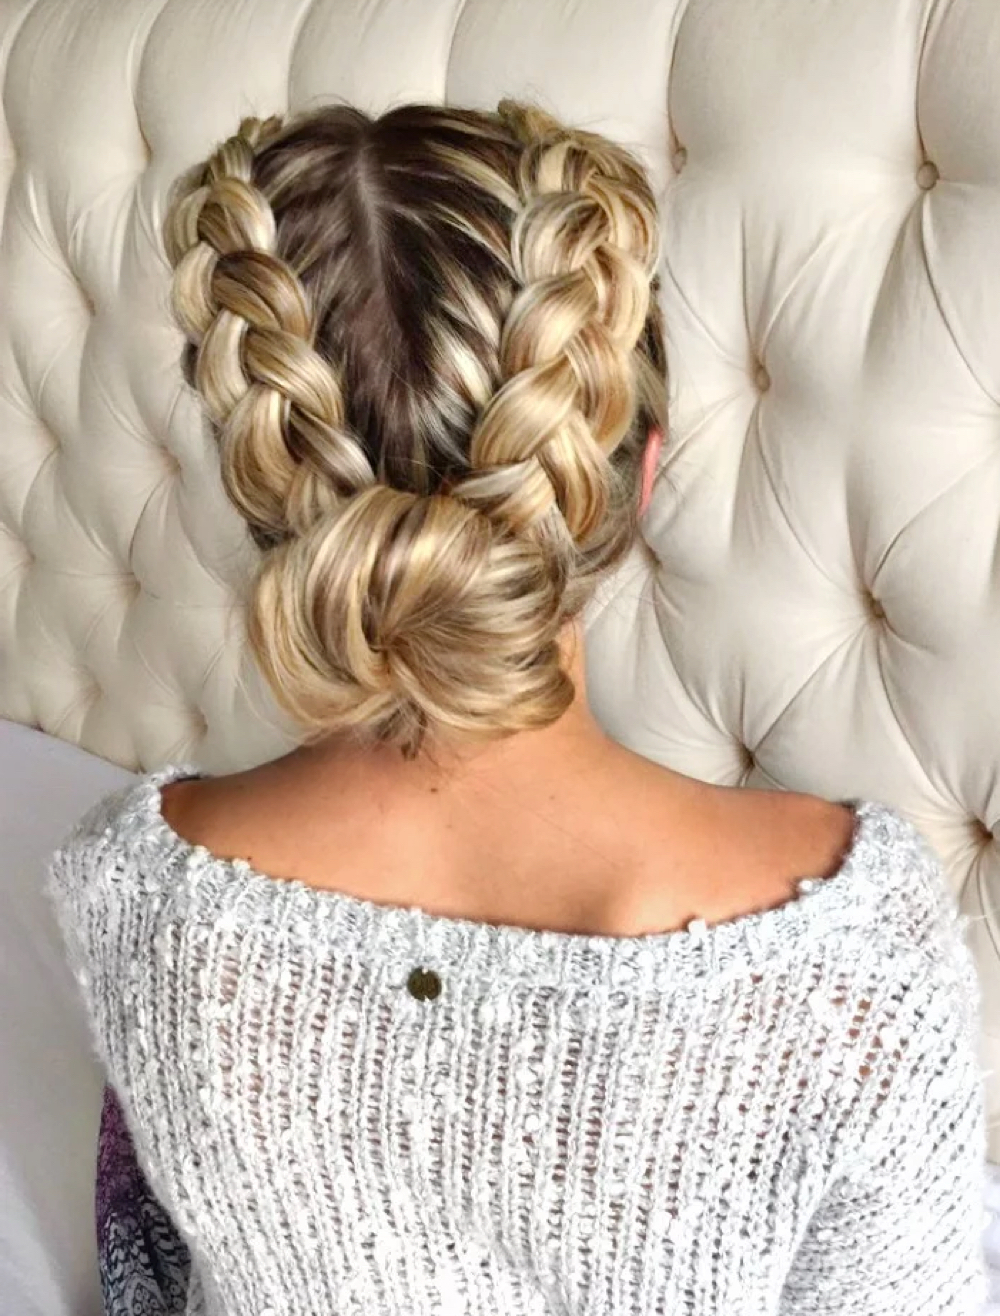 Latest Braided High Bun Hairstyles With Layered Side Bang In 29 Gorgeous Braided Updo Ideas For (View 14 of 20)